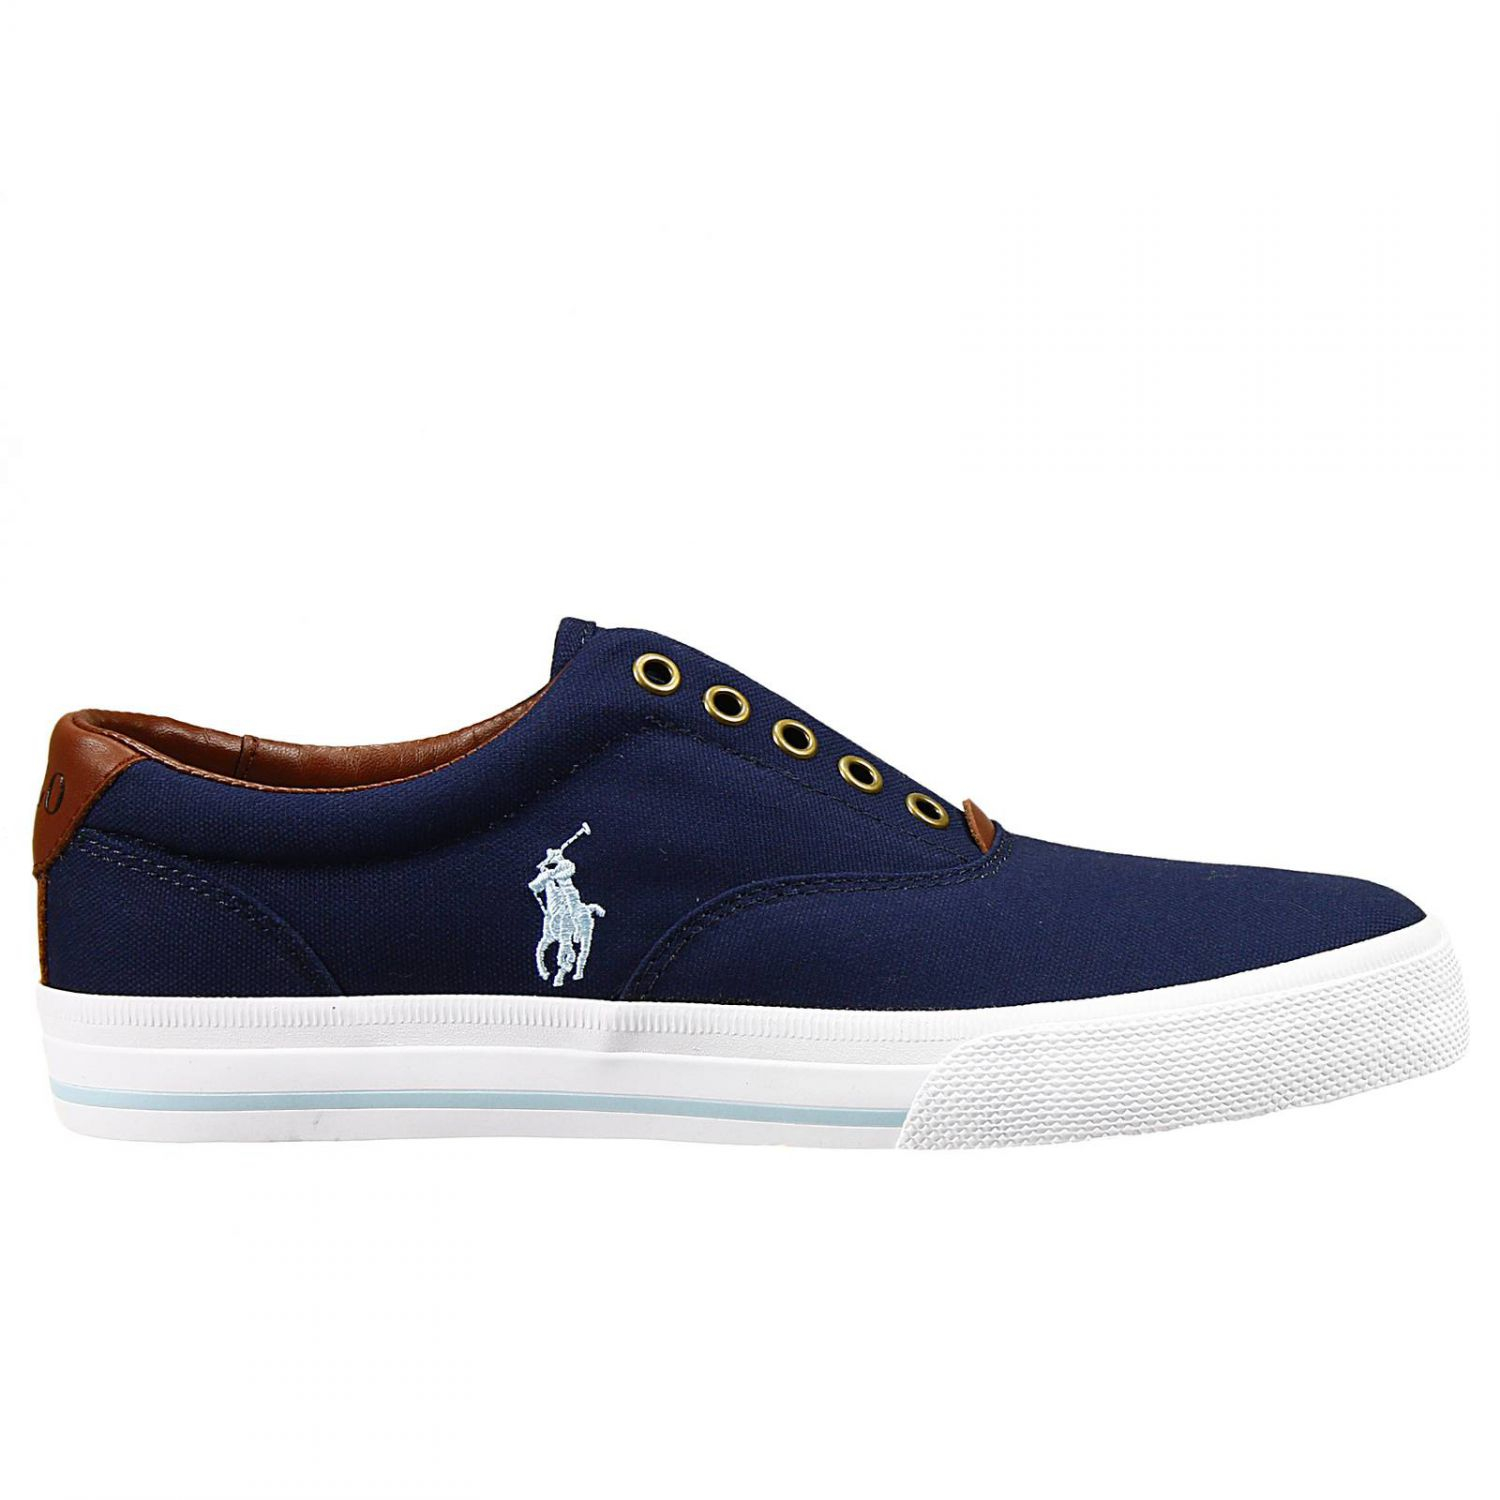 Just Call It Spring Men S Shoes